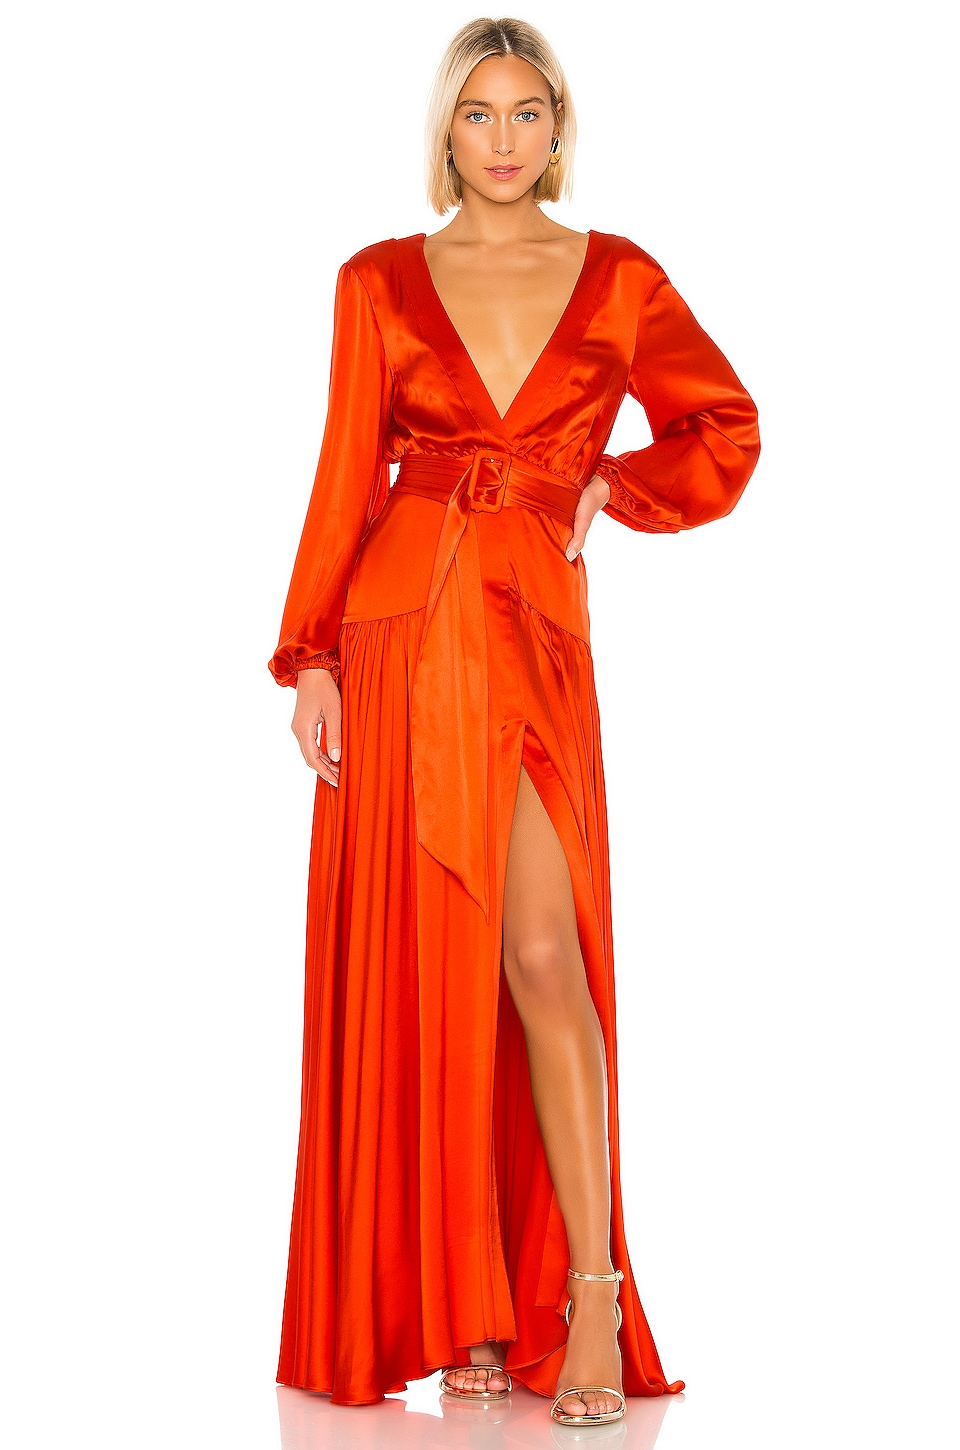 Alexis Modesta Gown in Red